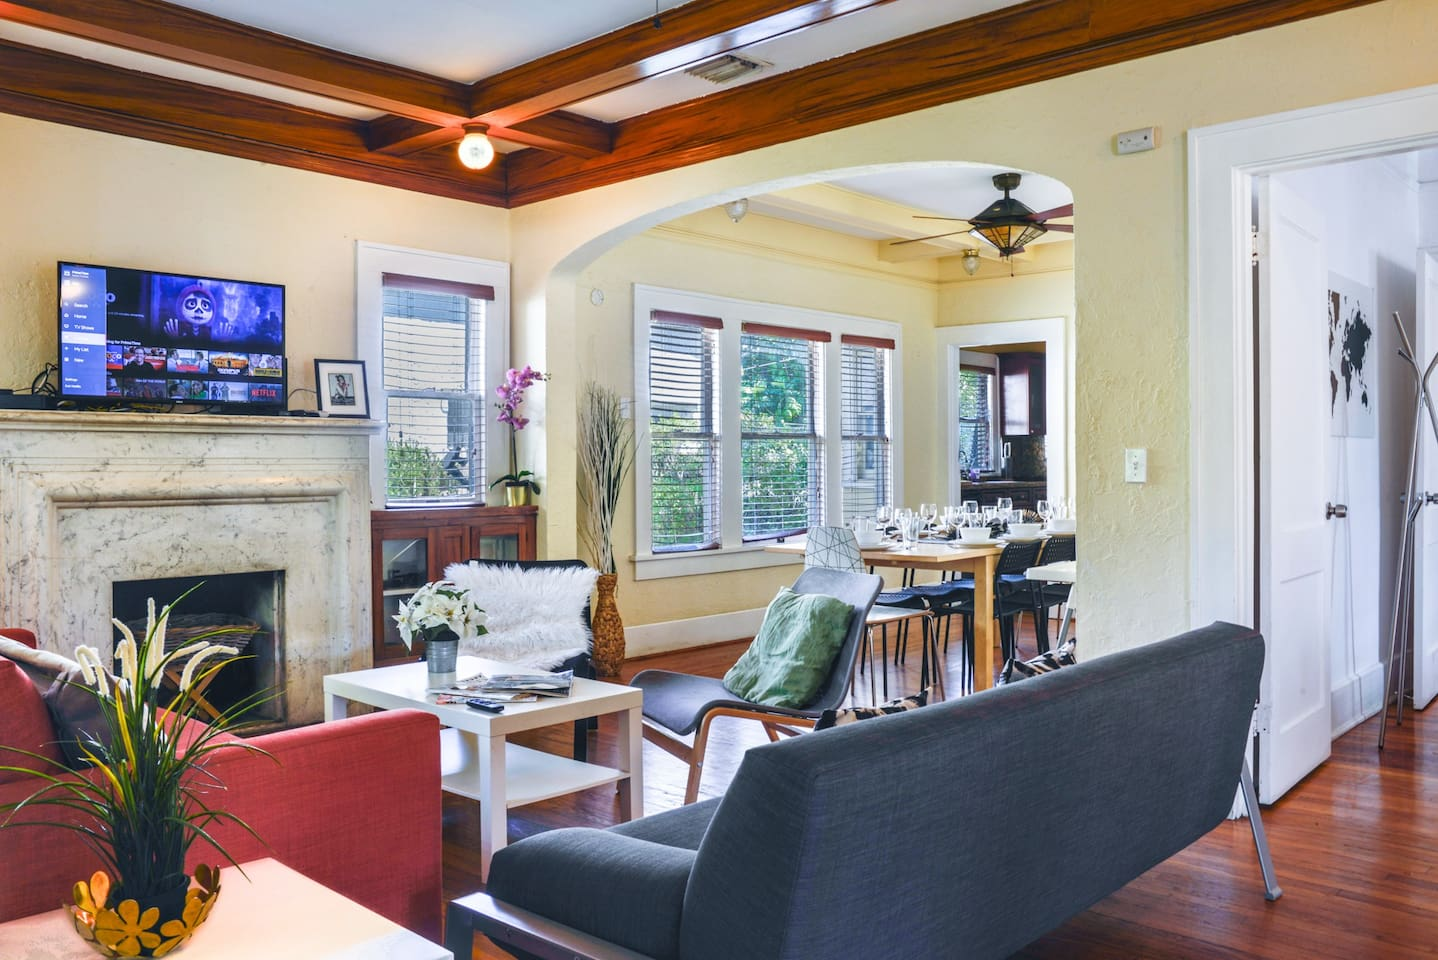 Amazing living room with open space to enjoy with your relatives.